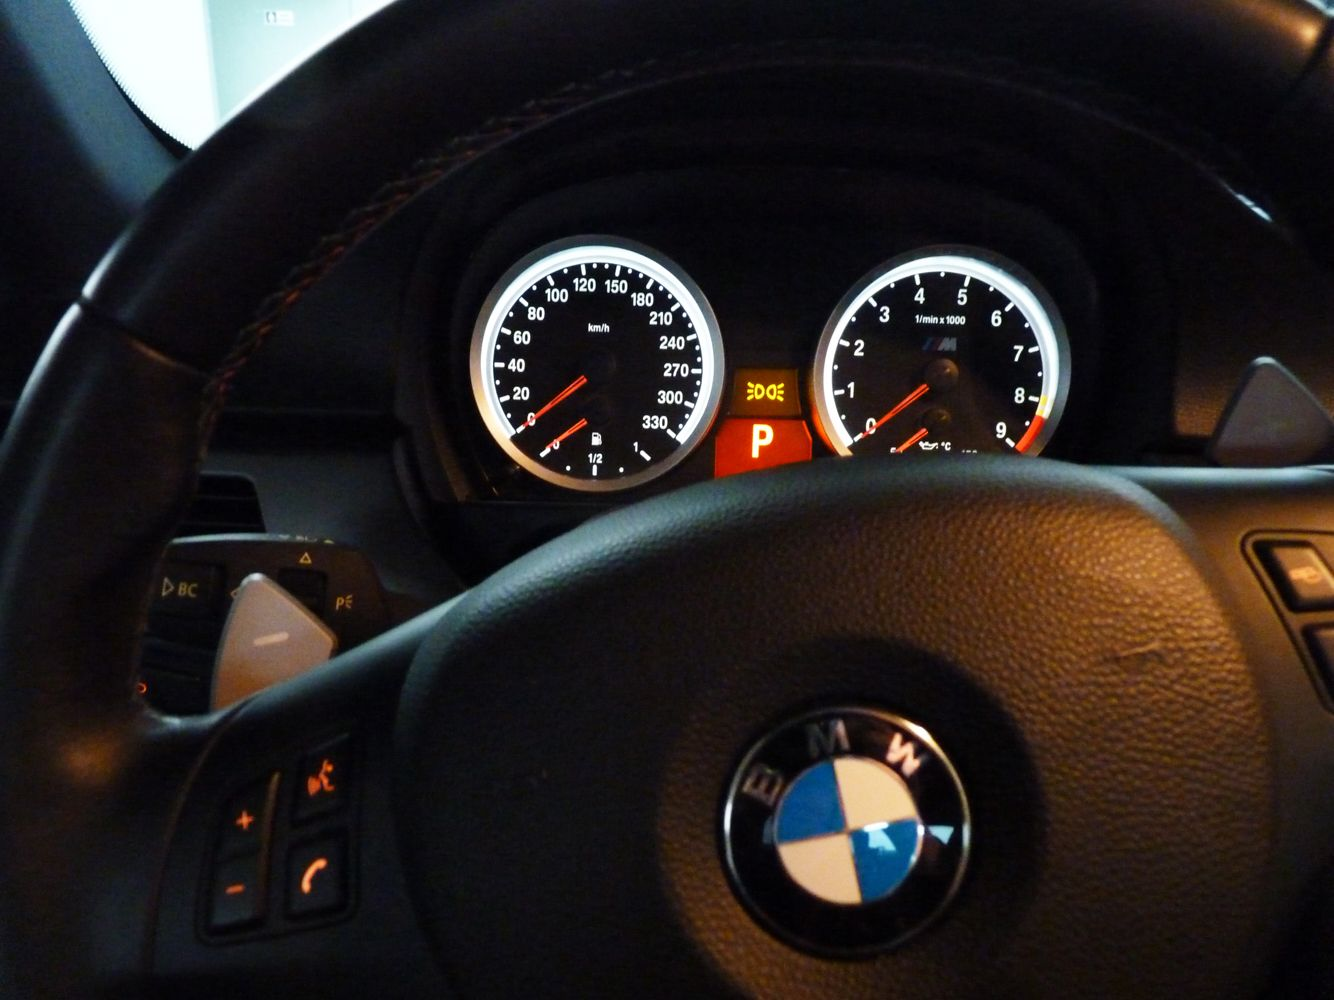 M3 E92 Dashboard Interior With Images Vehicles Bmw Logo